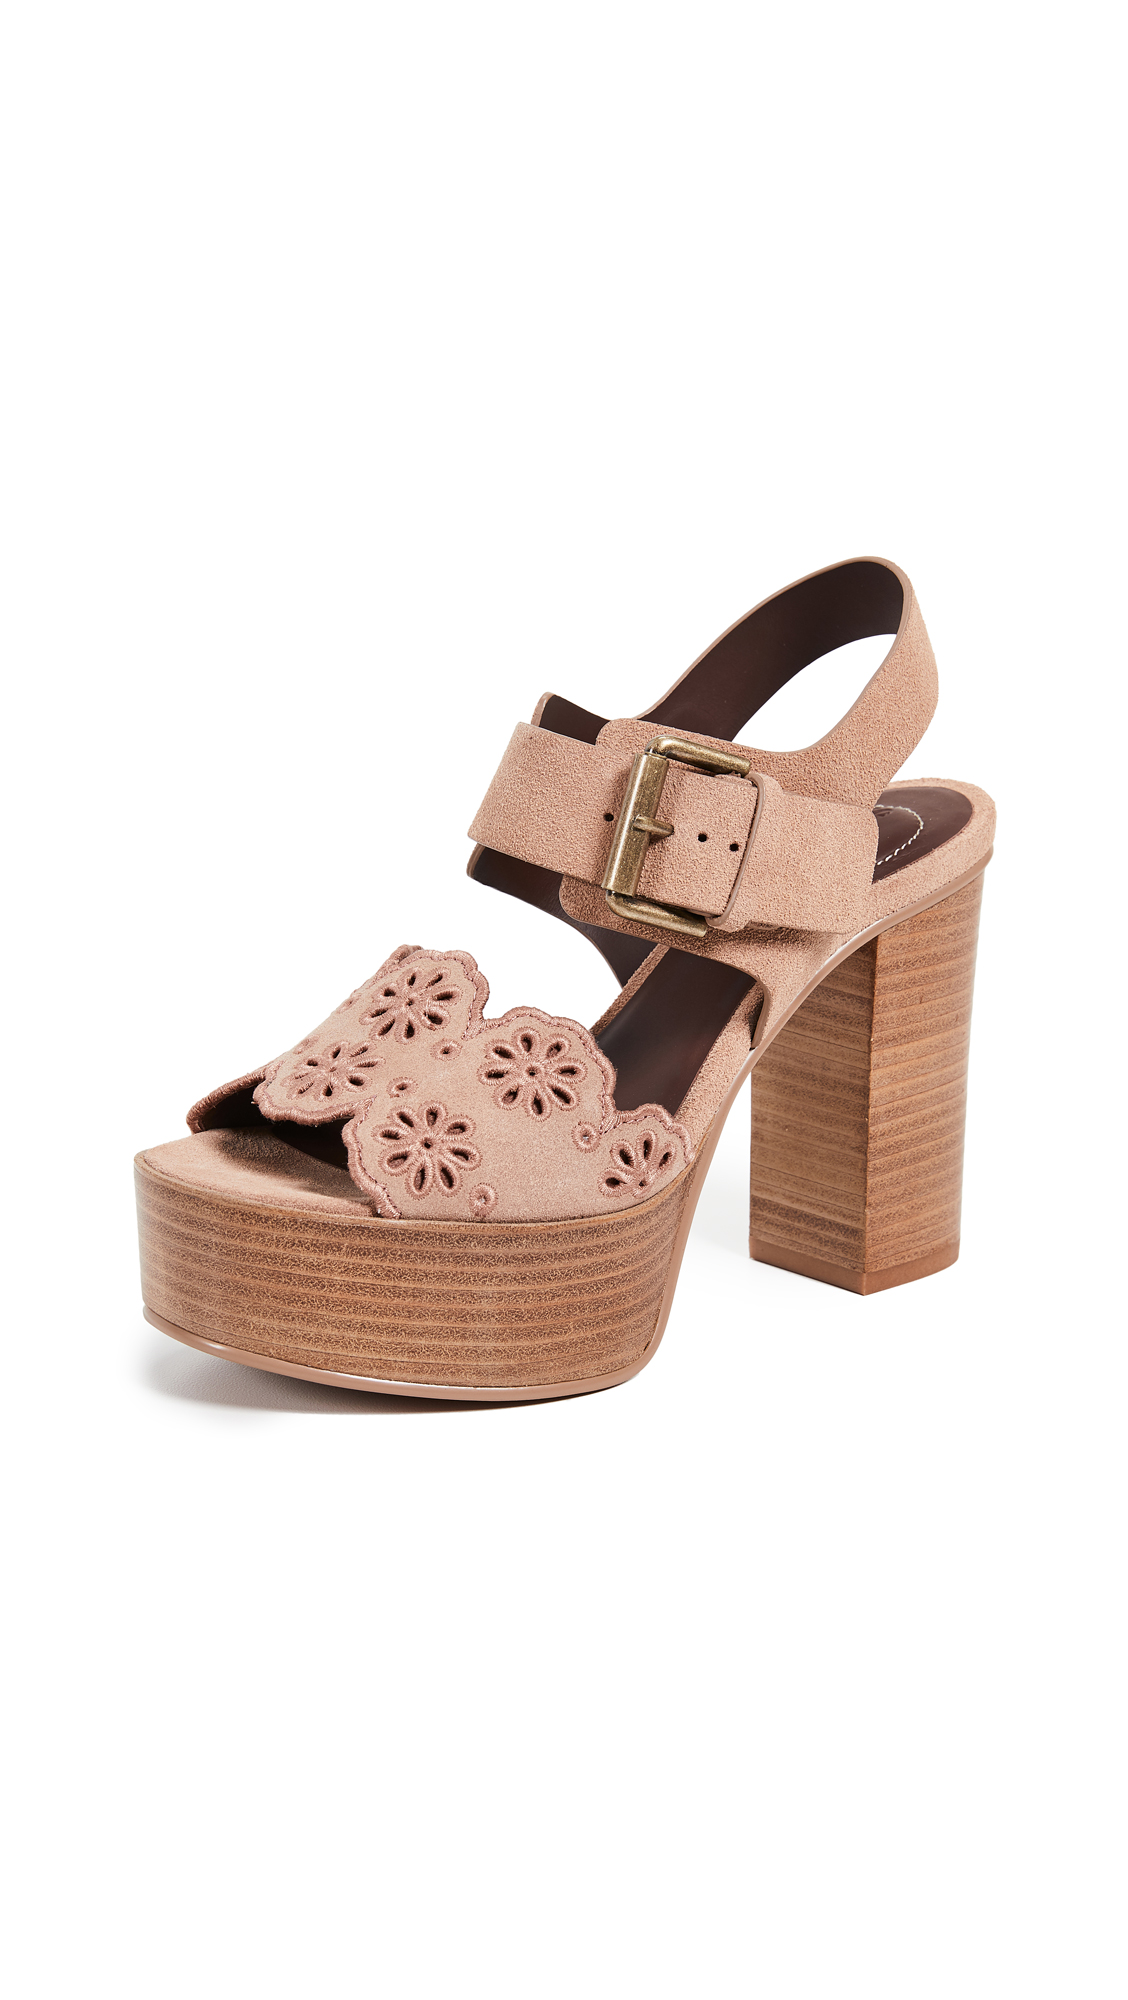 See by Chloe Krysty Foral Platform Sandals - Cipria